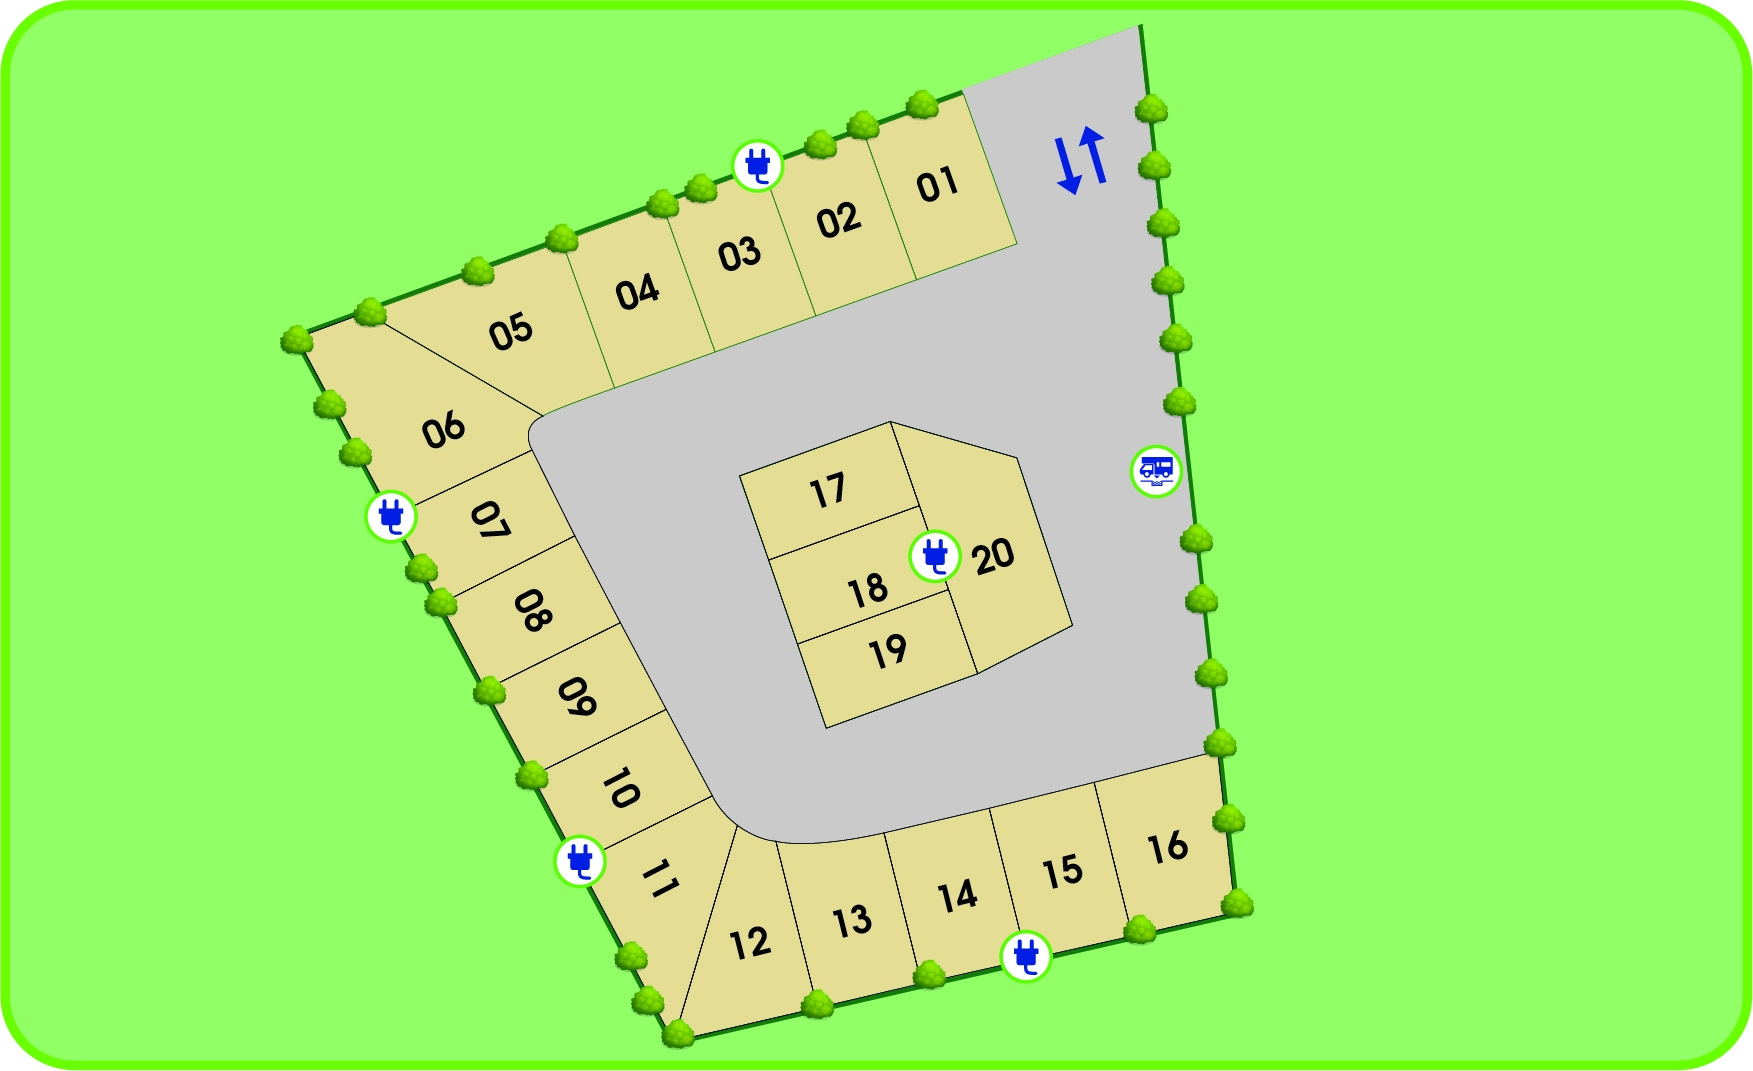 Plan of the area